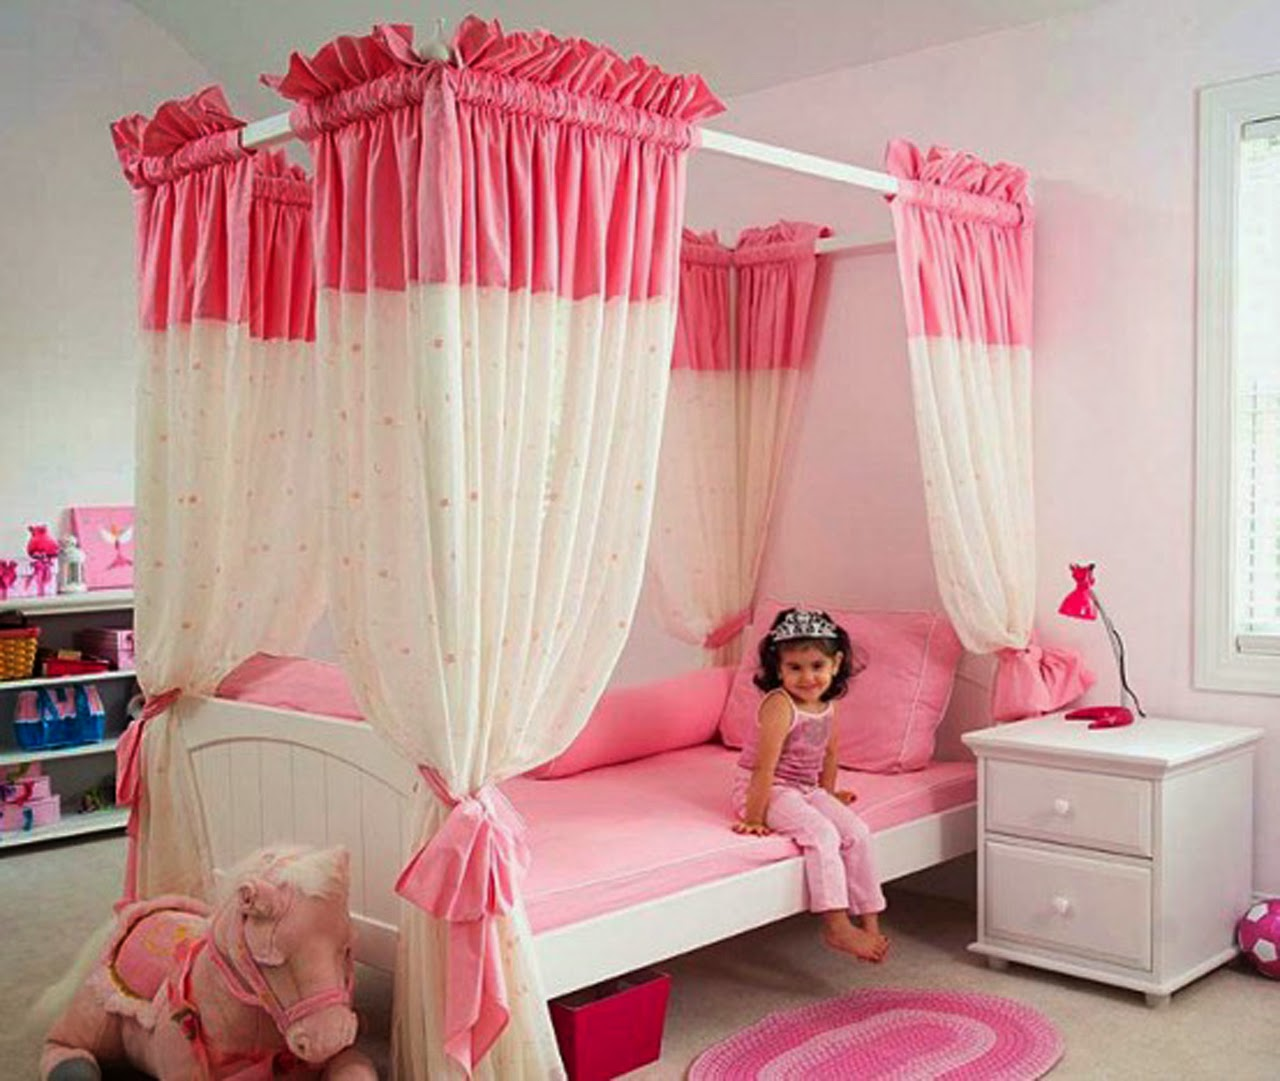 Pink bedroom decoration - Decorating A Pink Bedroom The Most Creative Ideas